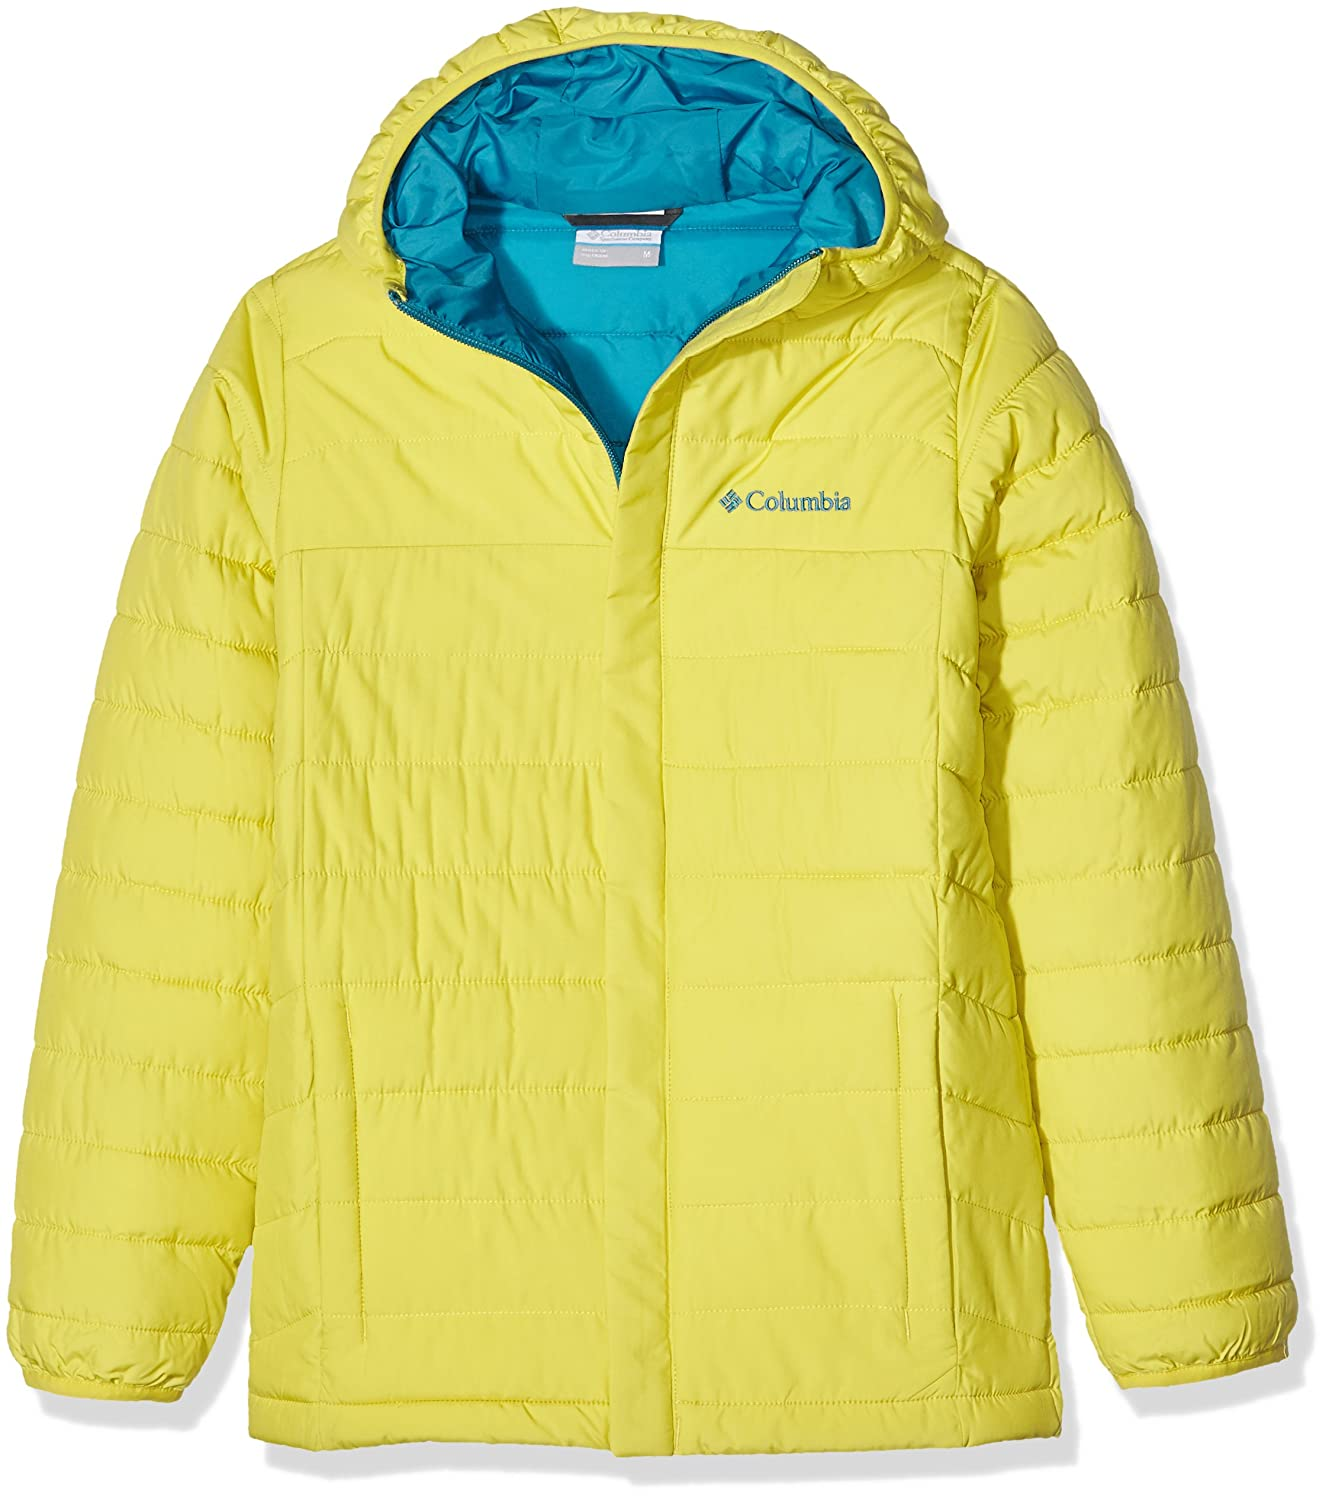 Columbia Powder Lite Puffer Doudoune Mineral Yellow 888667465635